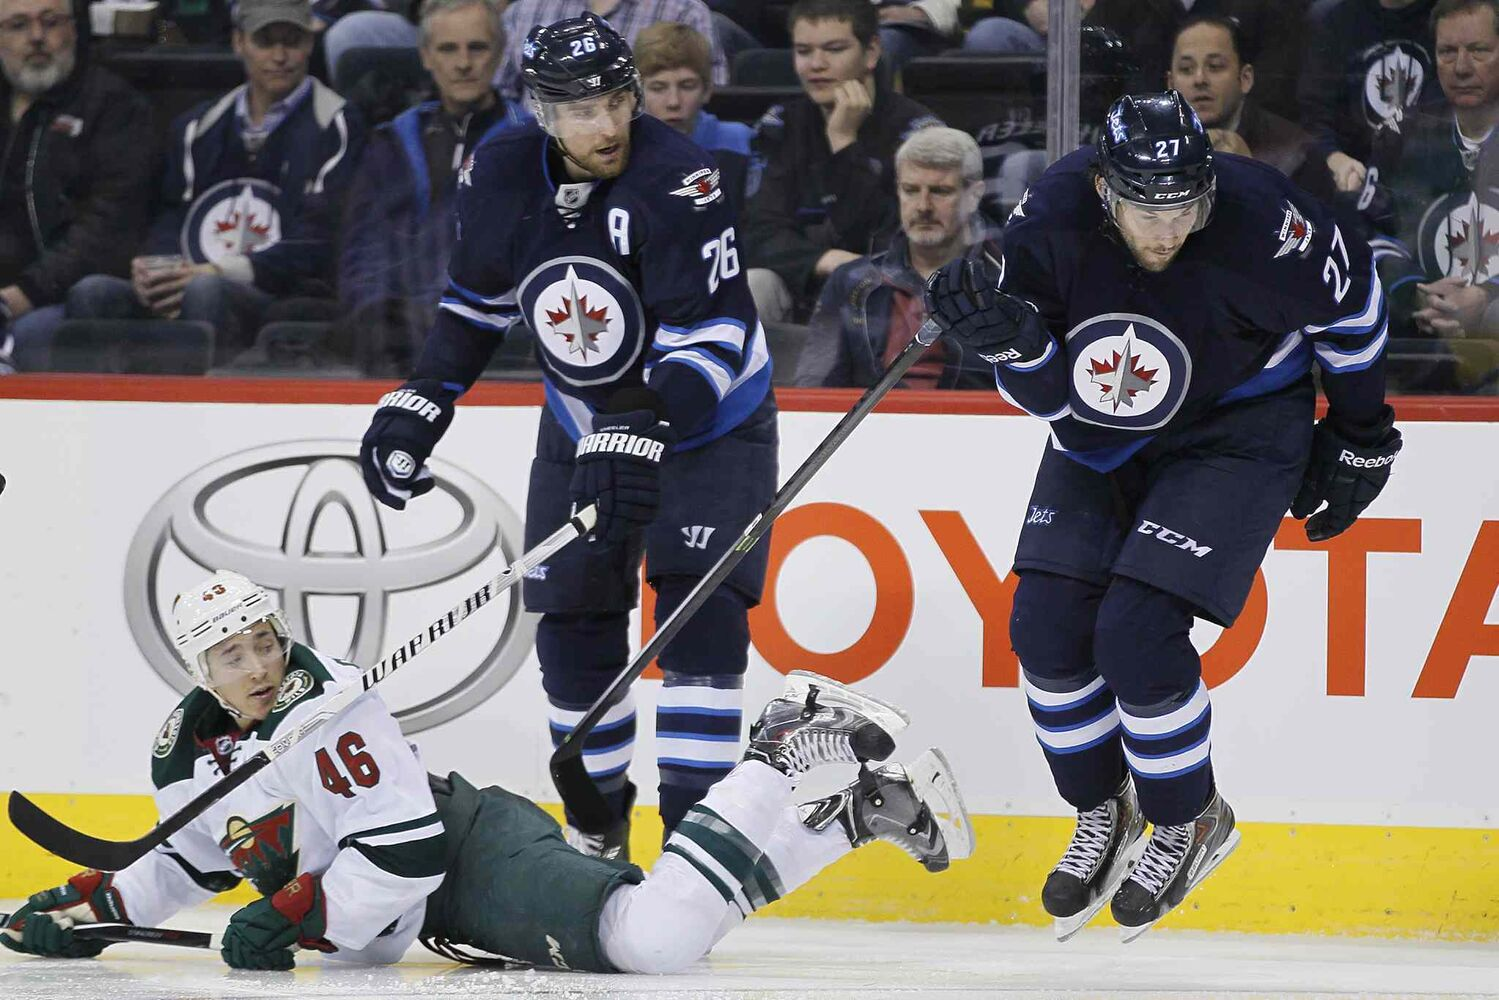 Jets forwards Blake Wheeler, left, and Eric Tangradi check Minnesota's Jared Spurgeon in the second period. (JOHN WOODS / WINNIPEG FREE PRESS)